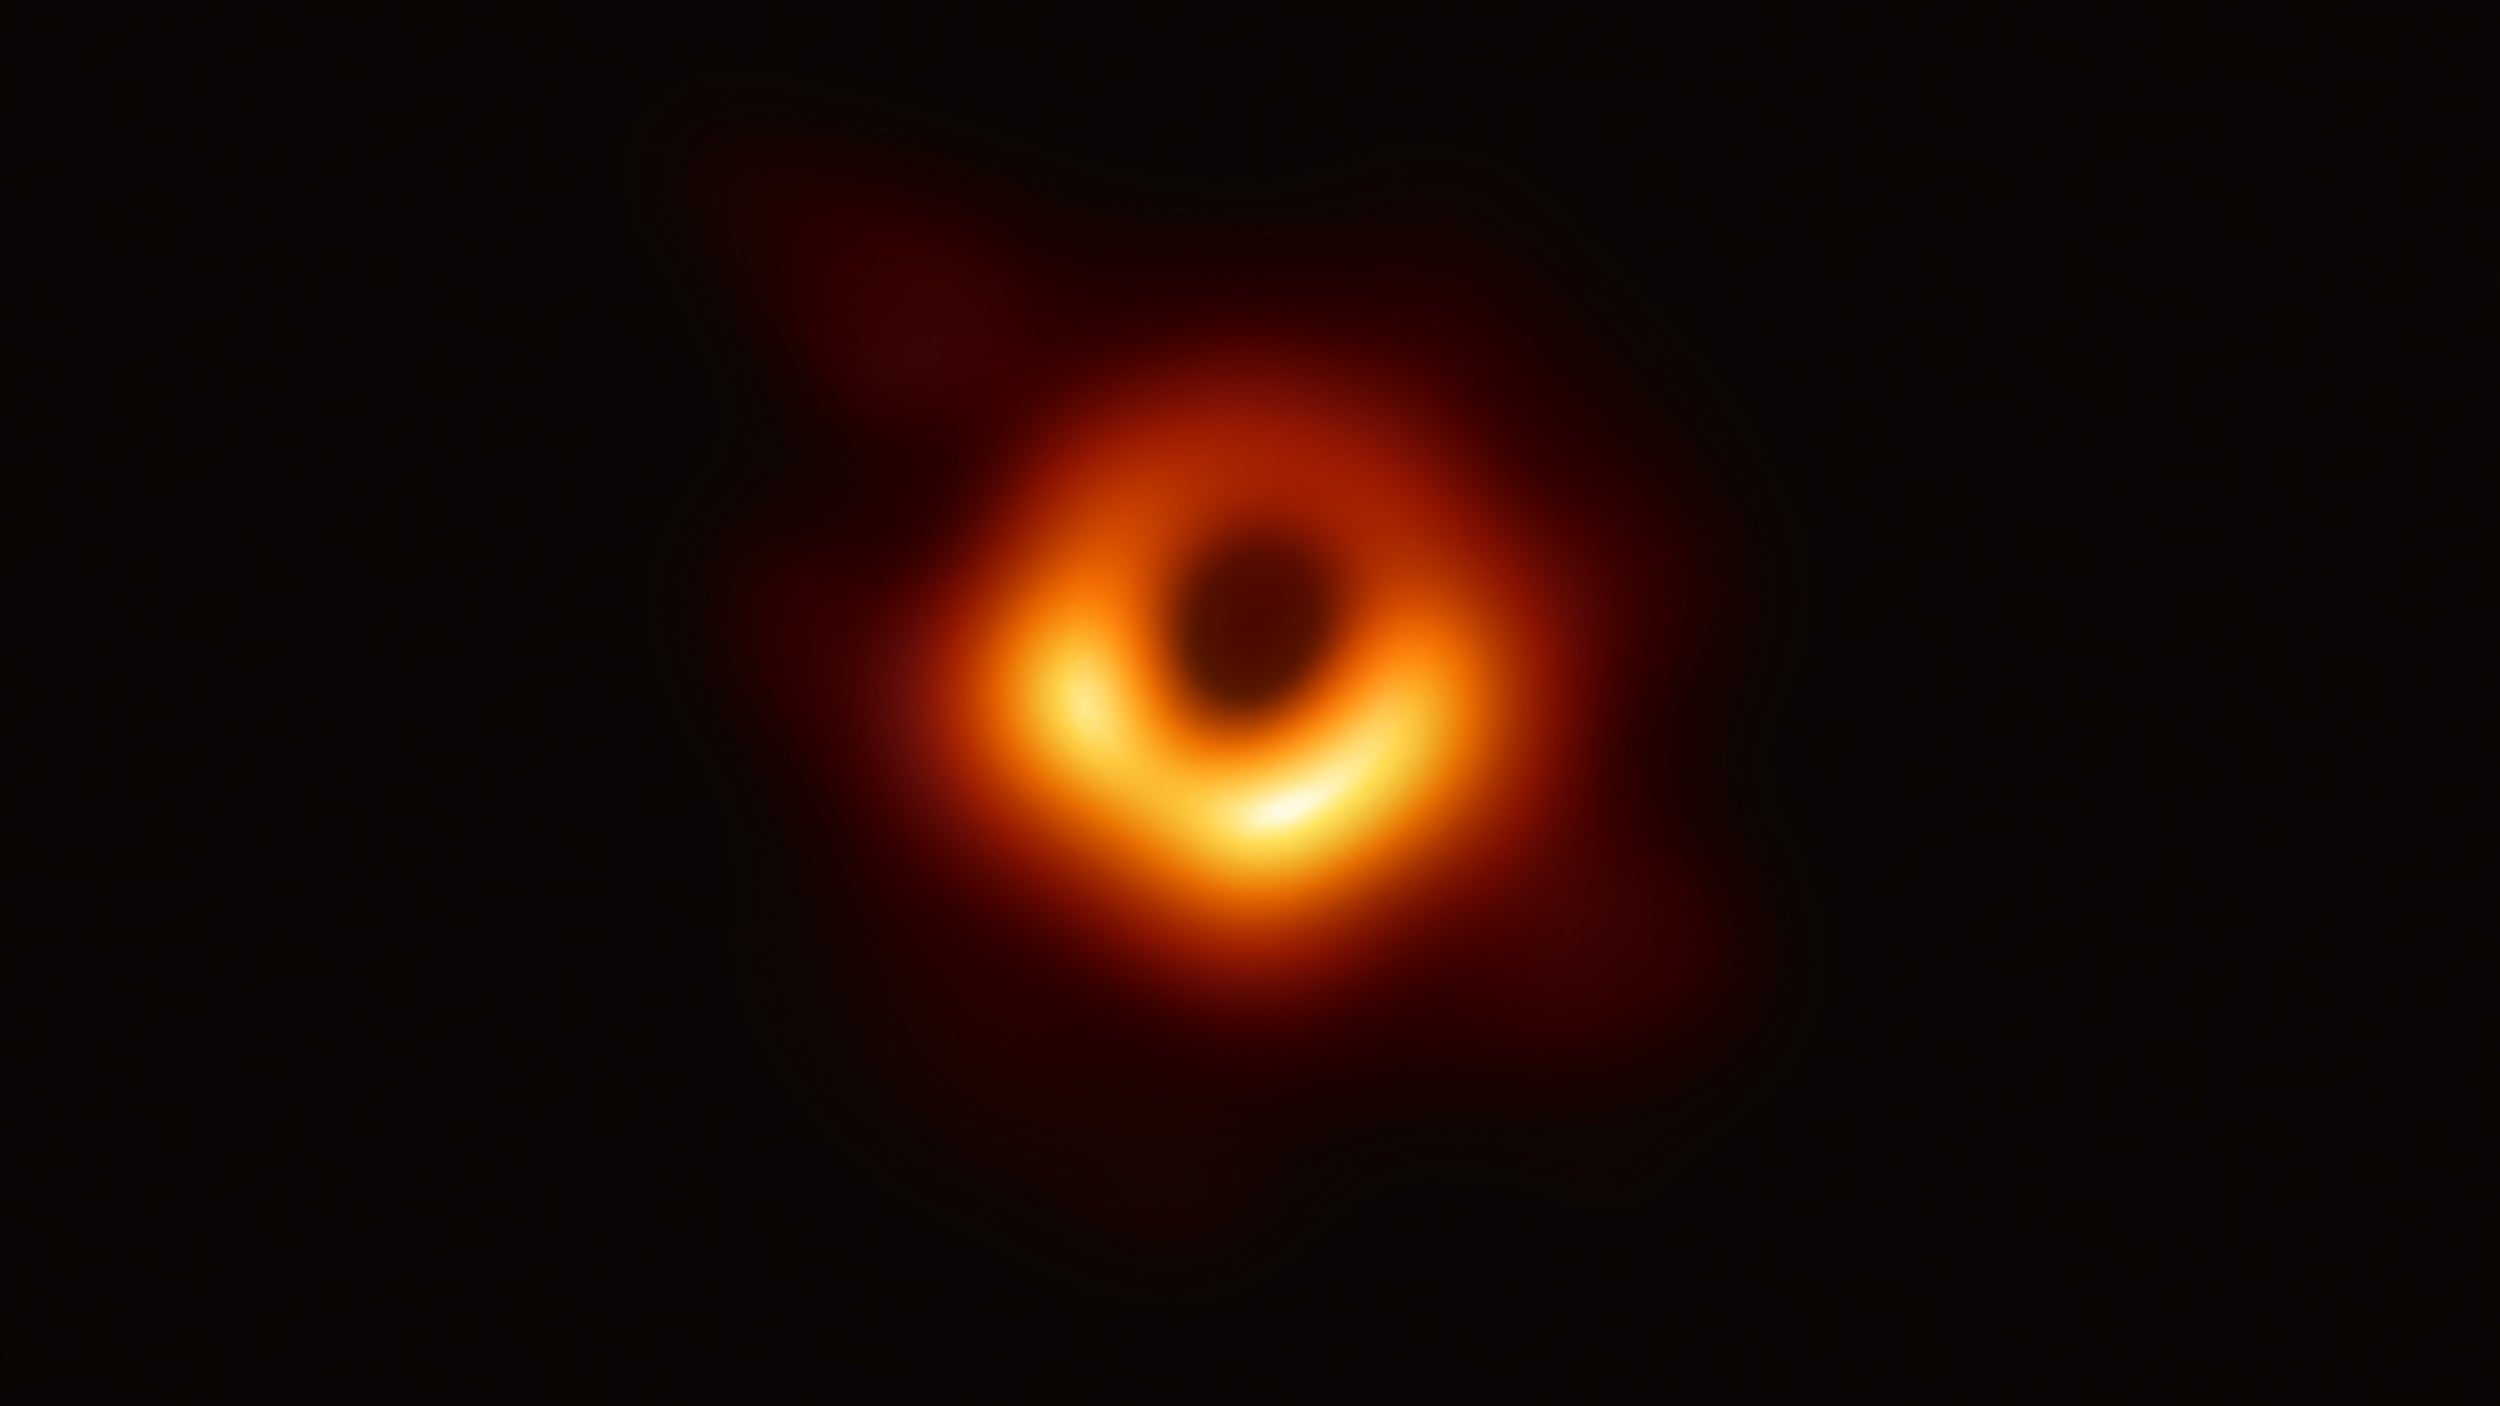 In the first picture of a black hole, it is outlined by emission from hot gas swirling around it under the influence of strong gravity near its event horizon.